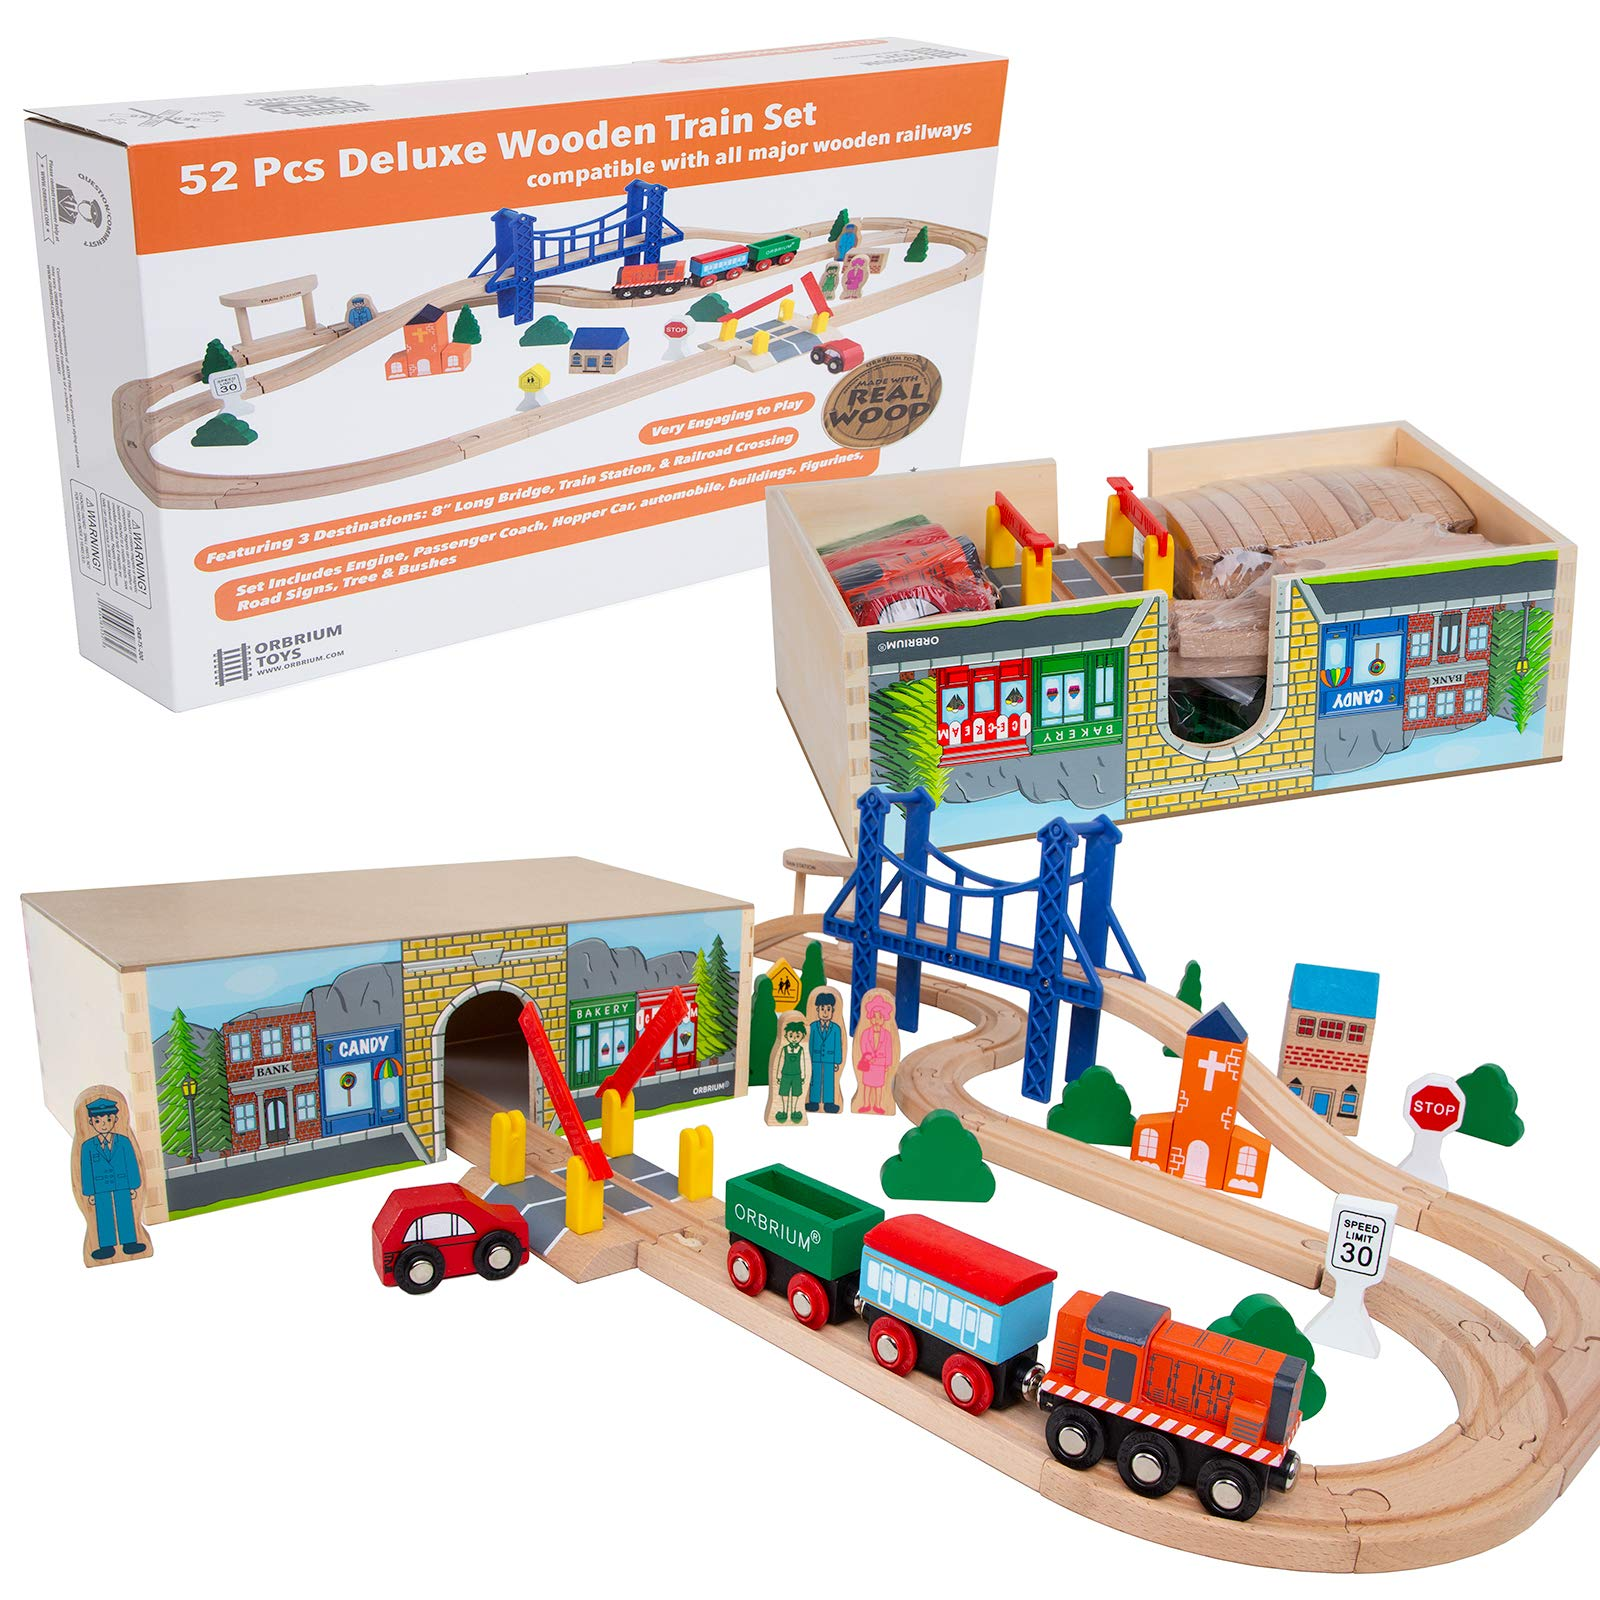 Orbrium Toys 52 Pcs Deluxe Wooden Train Set with 3 Destinations Fits Thomas, Brio, Chuggington, Melissa and Doug, Imaginarium Wooden Train by Orbrium